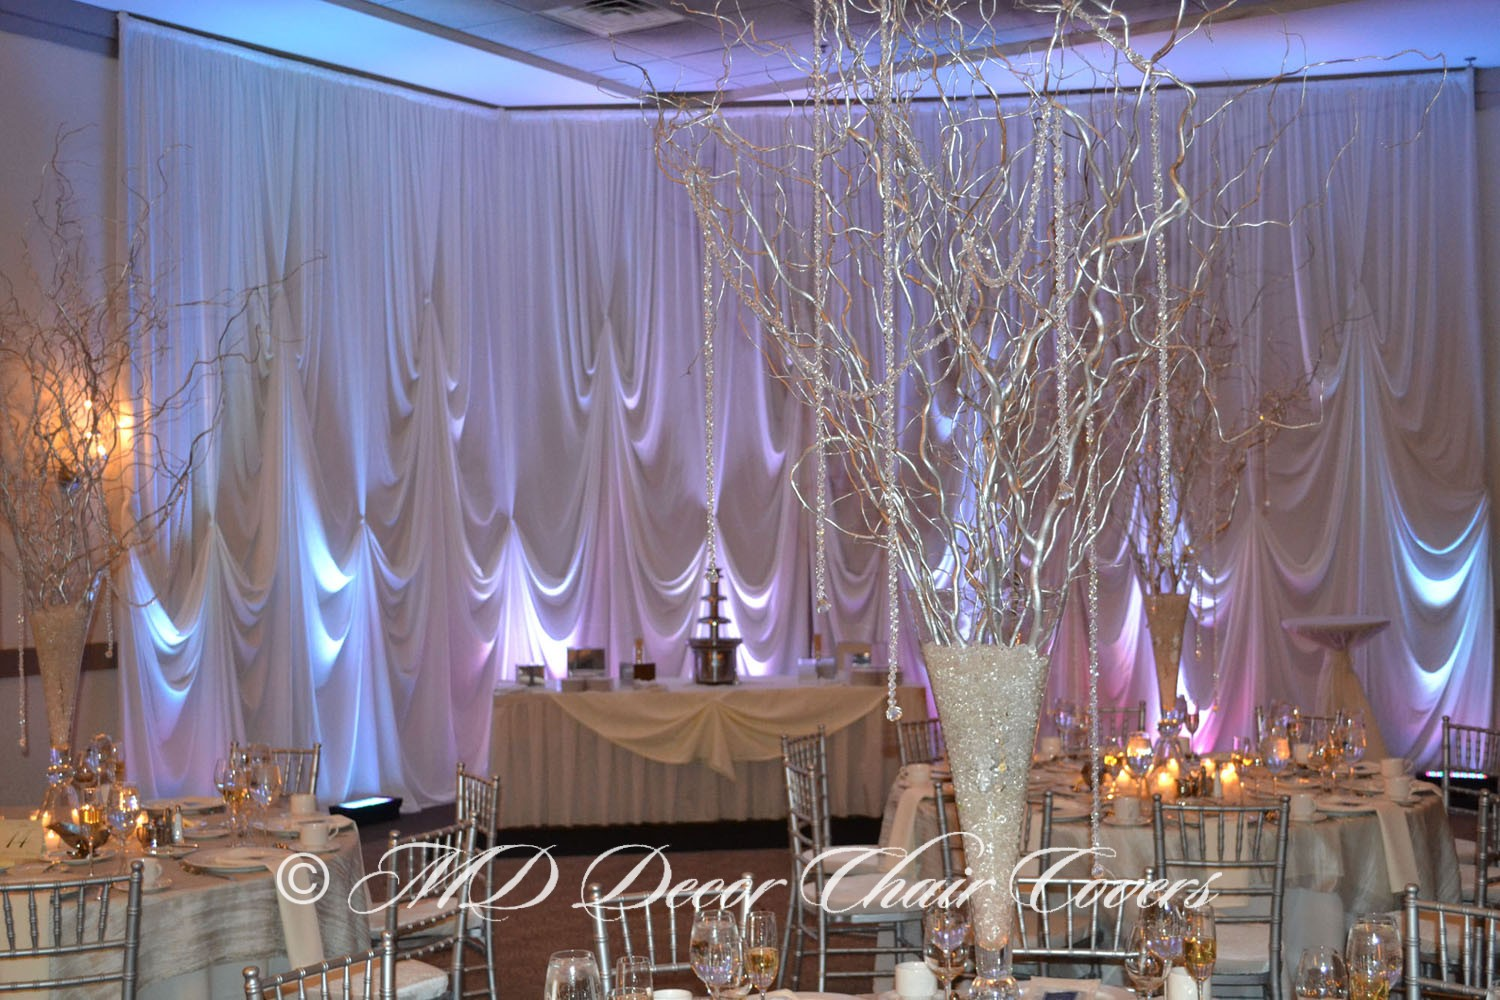 Silver chiavari chairs with a multiple light back drop